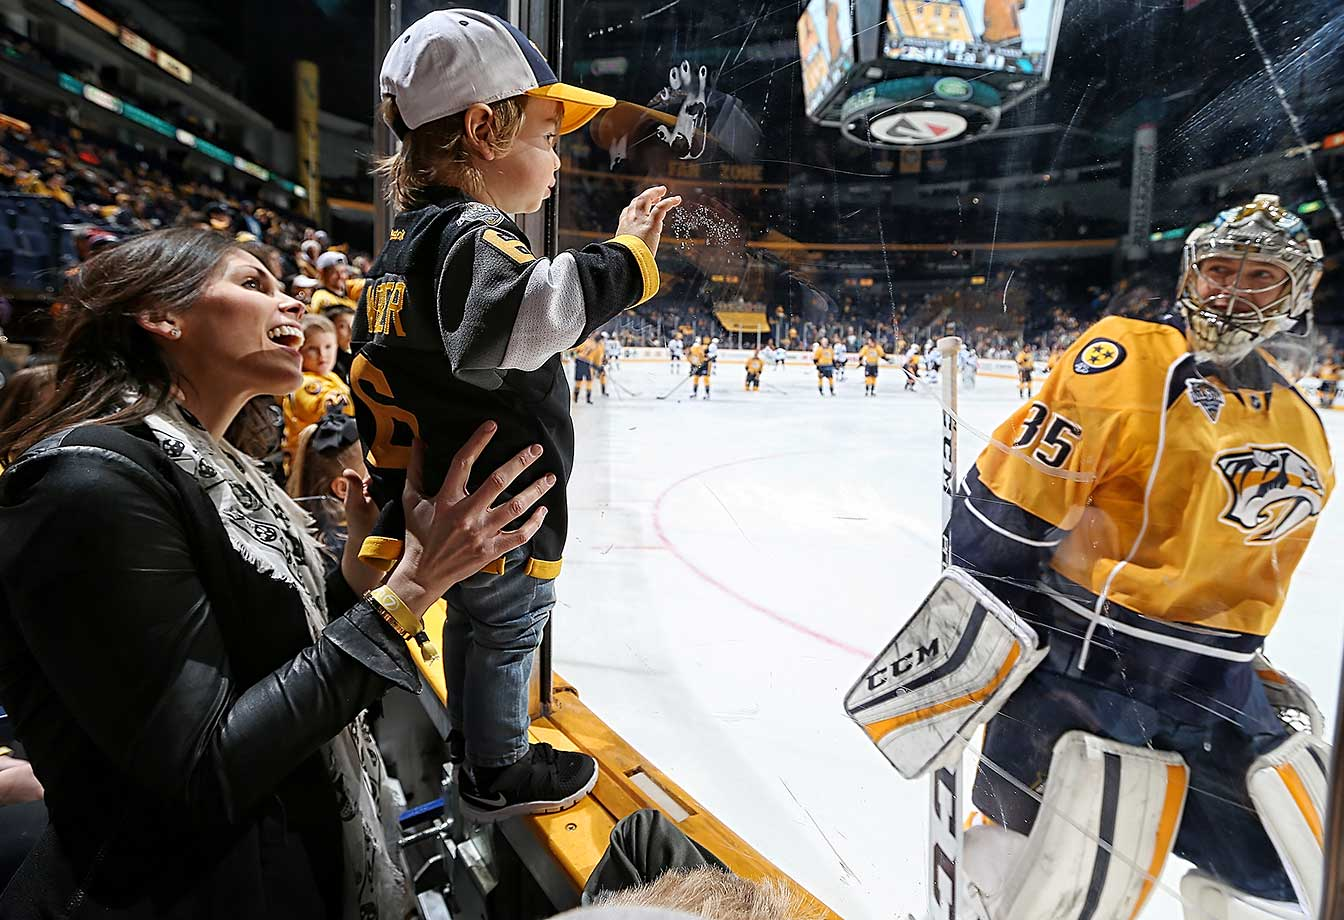 Pekka Rinne of Nashville skates by Beckett Weber and his mom, Bailey, as they watch a game against San Jose.